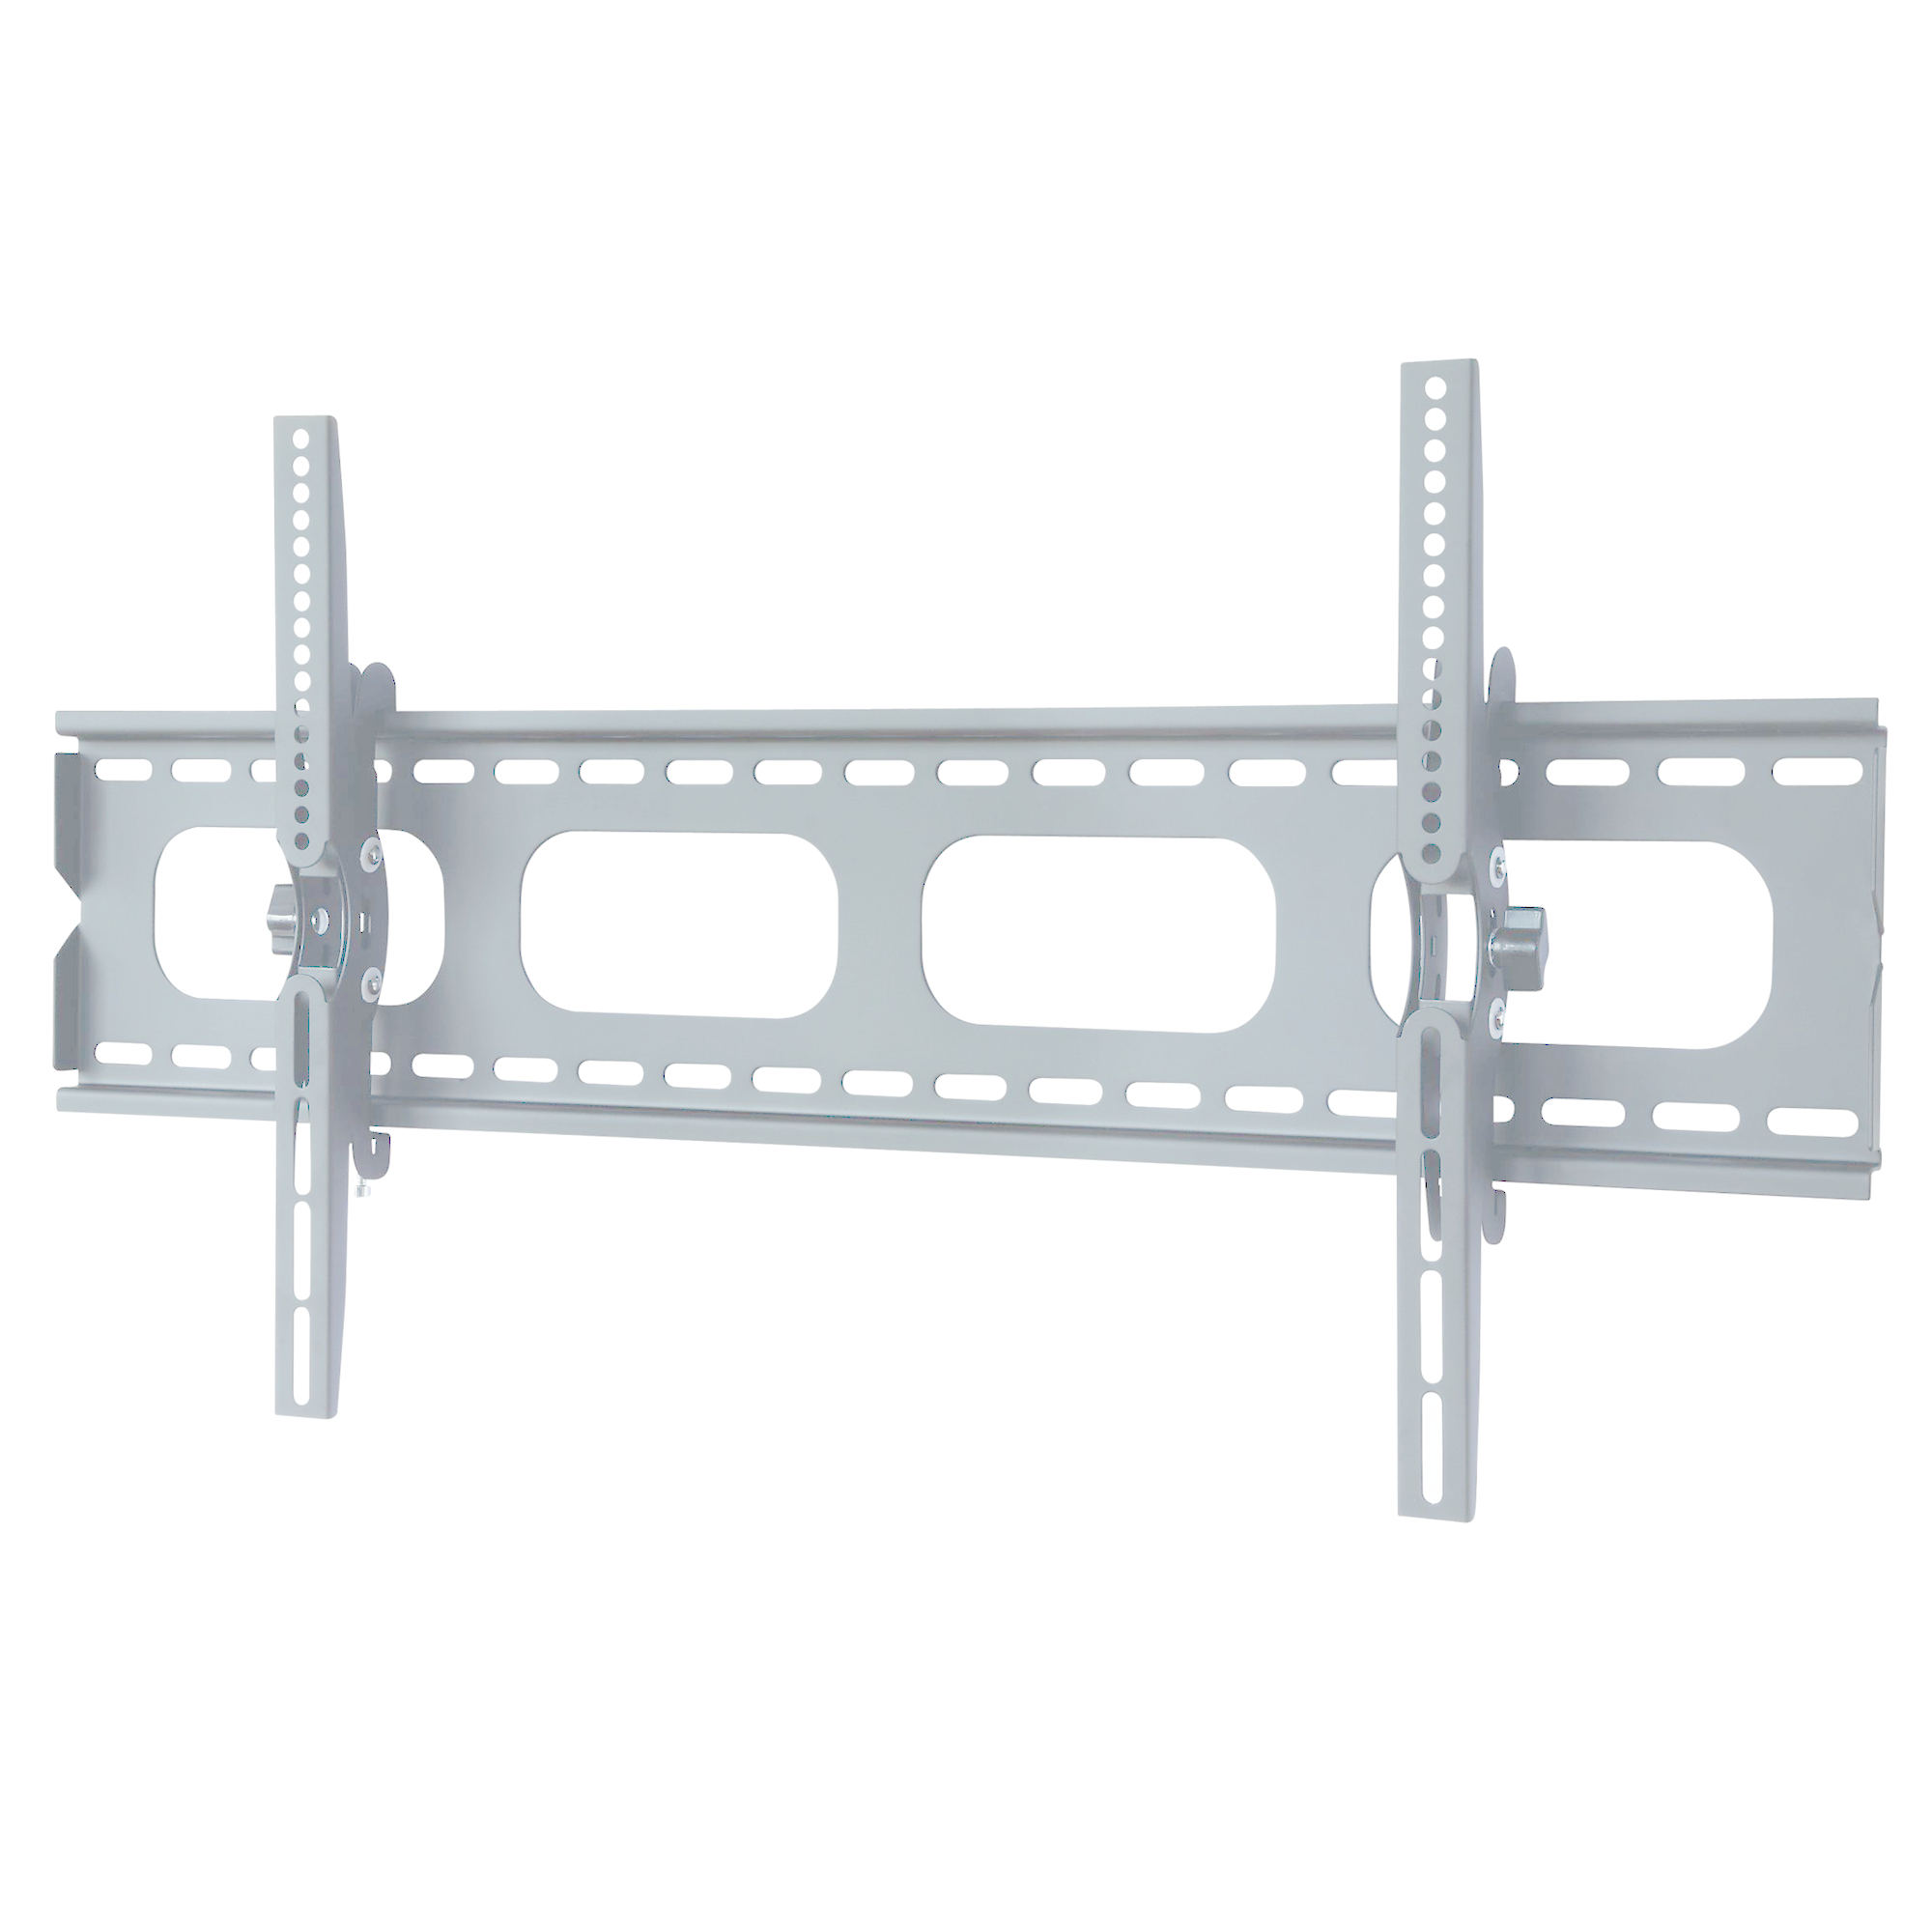 TygerClaw Tilting Wall Mount for 40 in. to 70 in. Flat Panel TV - image 1 de 1